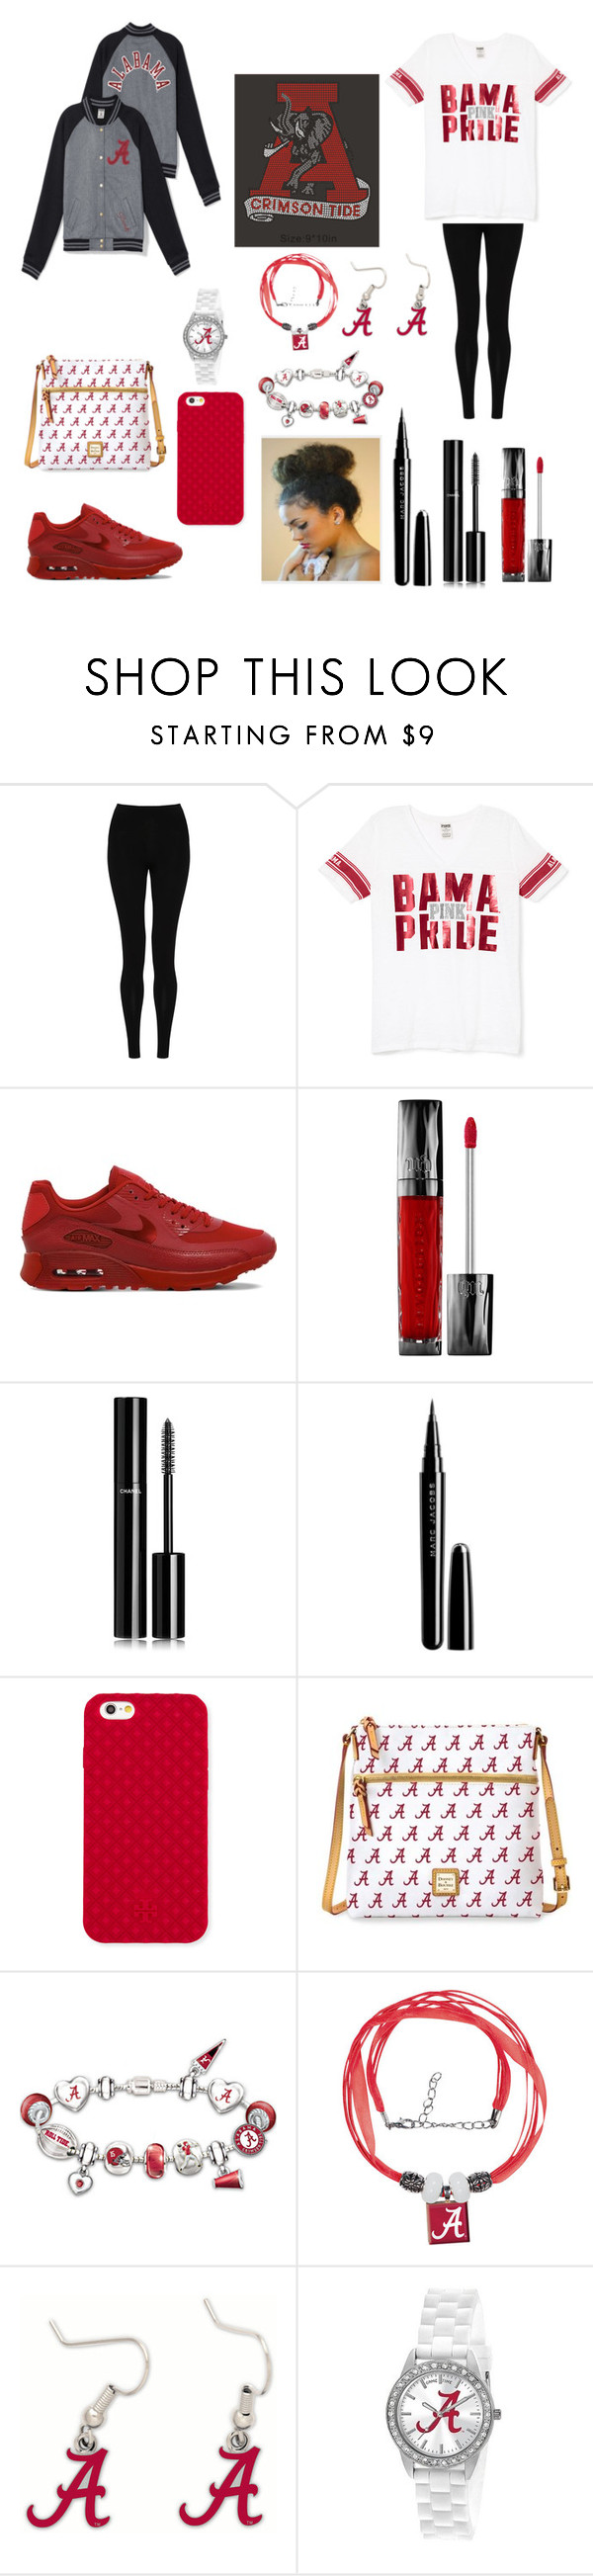 """""""ROOOLL TIDE!!!"""" by tayllorliz-1 ❤ liked on Polyvore featuring M&S Collection, NIKE, Urban Decay, Chanel, Marc Jacobs, Tory Burch, Dooney & Bourke, The Bradford Exchange, WinCraft and Game Time"""